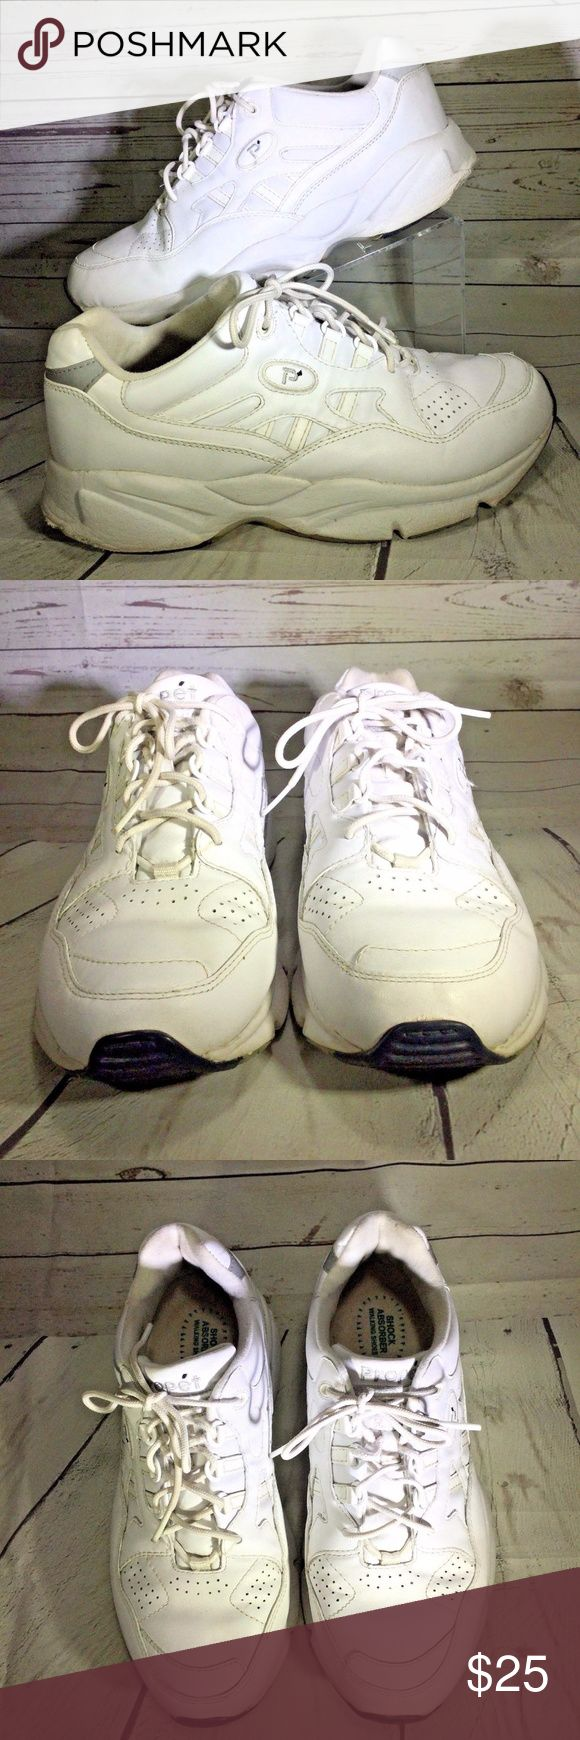 Propet Stability Walker 9 2E WIDE white leather Nice pair of walking shoes  Propet  White leather  Women's size 9 (2E) WIDE Propet Shoes Athletic Shoes